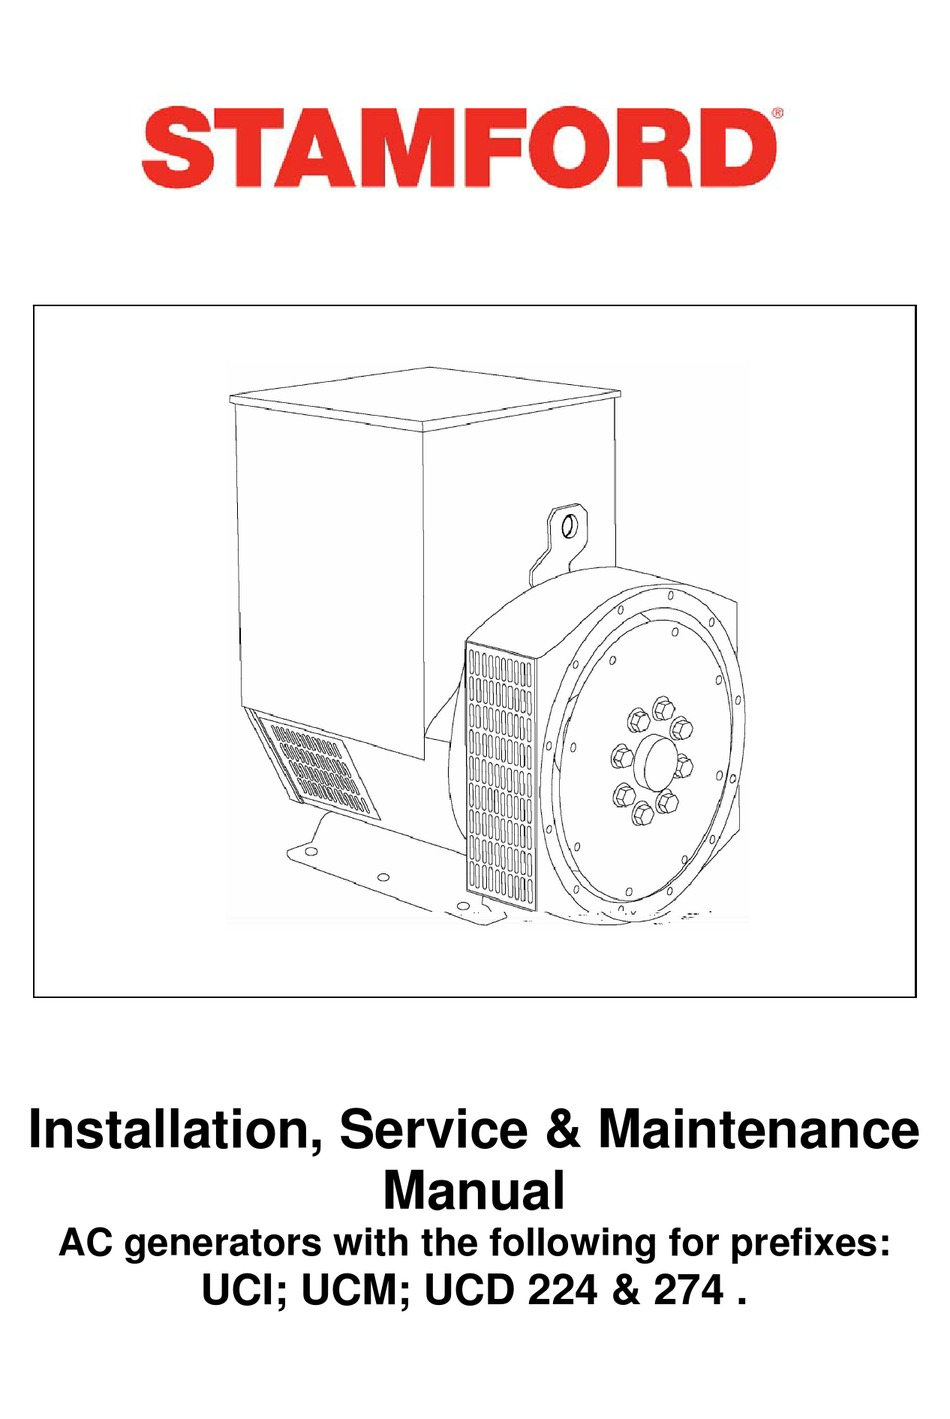 stamford ac generators installation & maintenance manual pdf download |  manualslib  manualslib